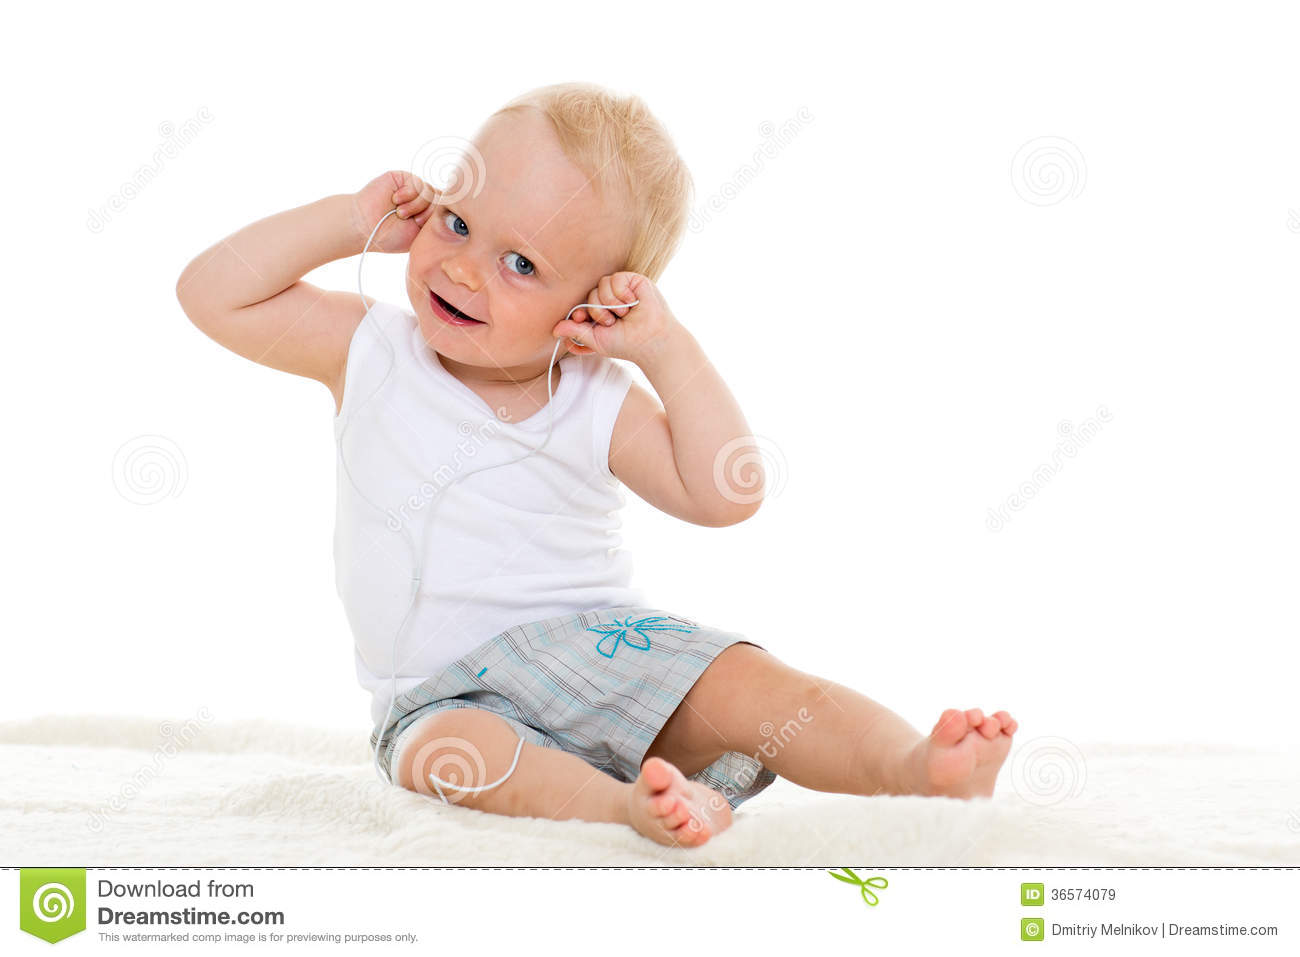 Small baby listening to music.